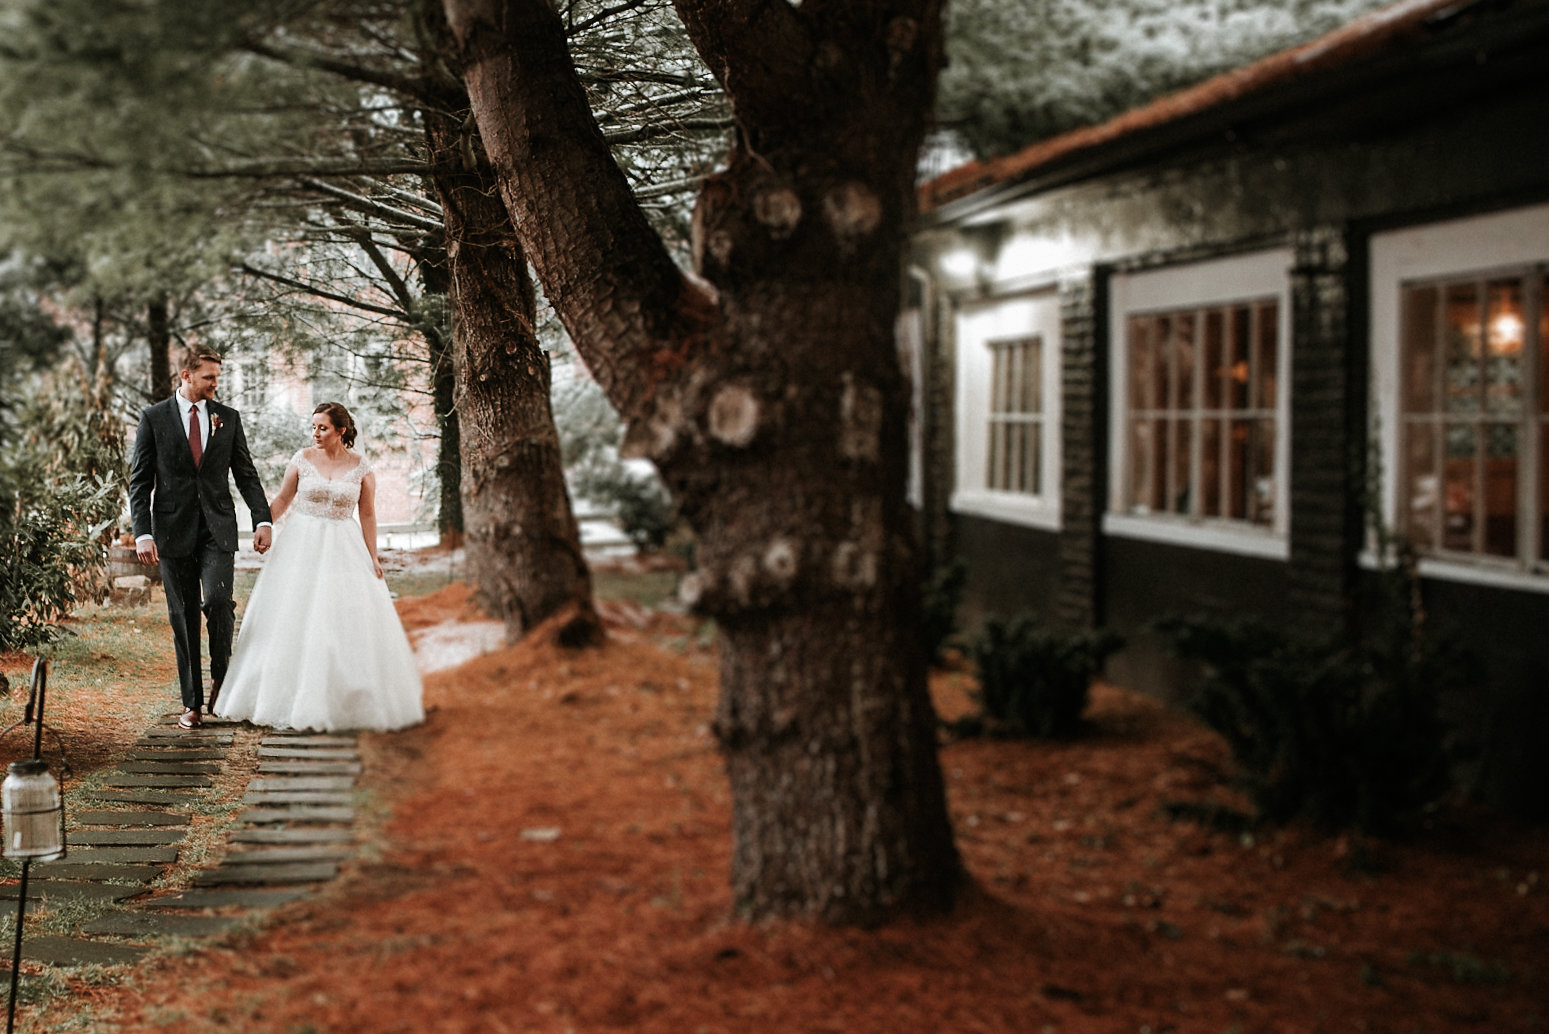 Bride and groom walking on path under pine trees